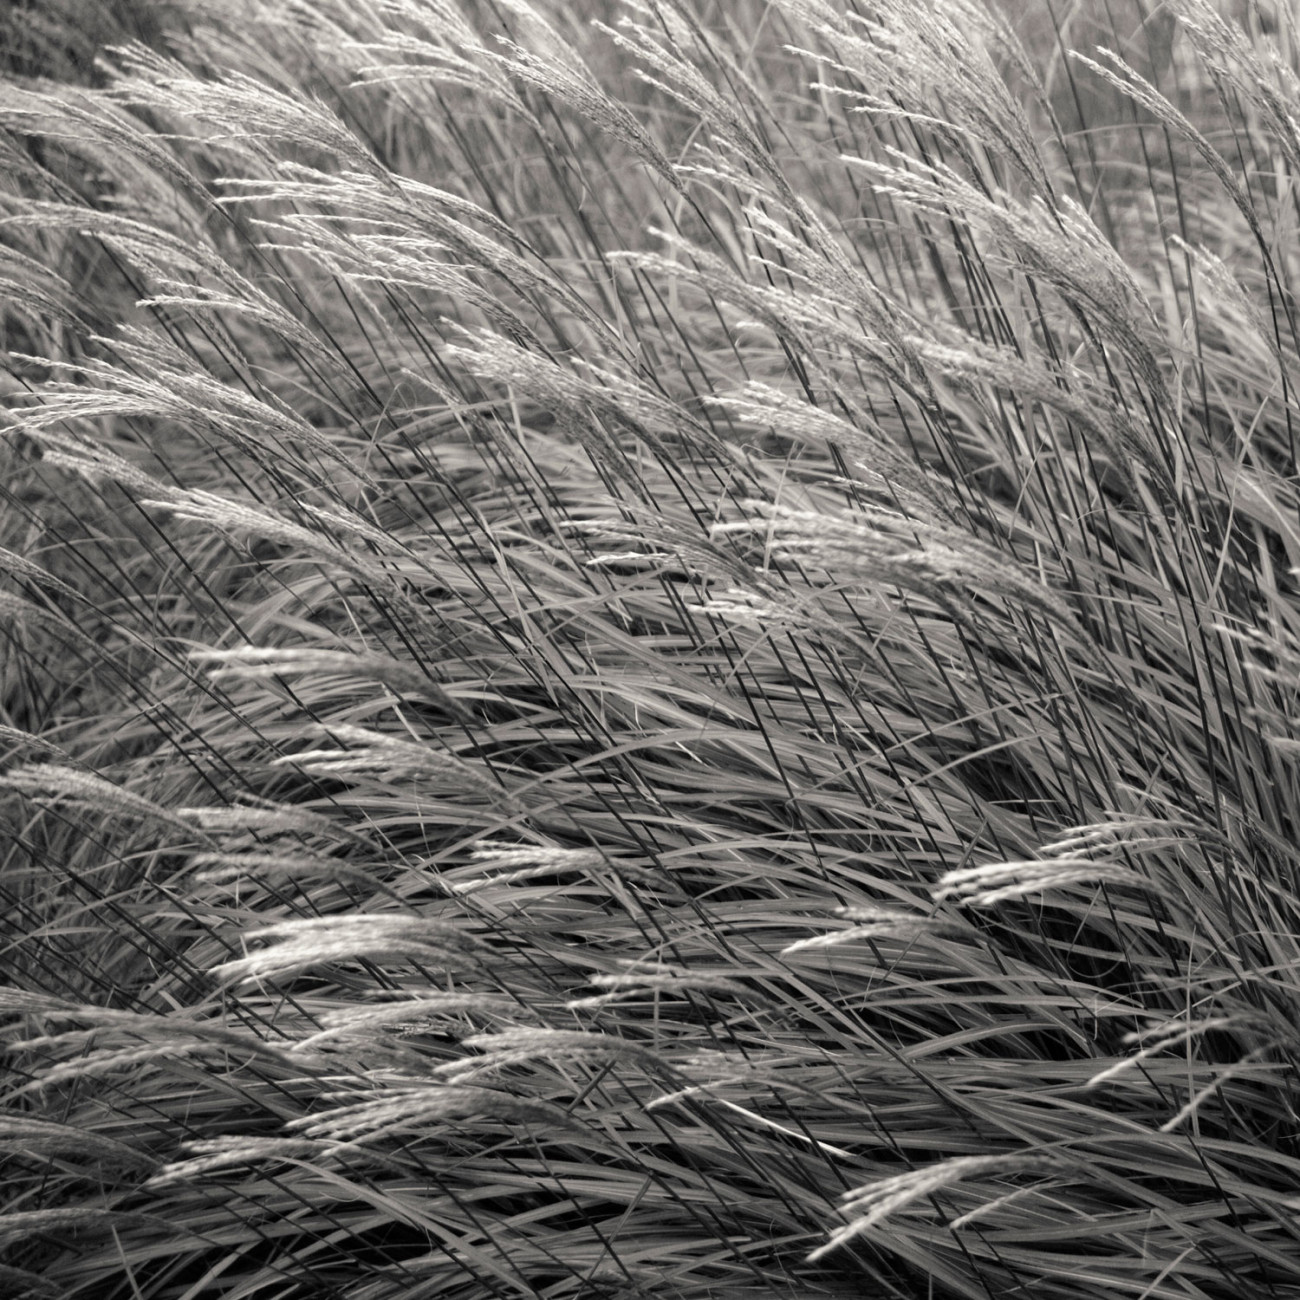 Shore grasses, California, 2006